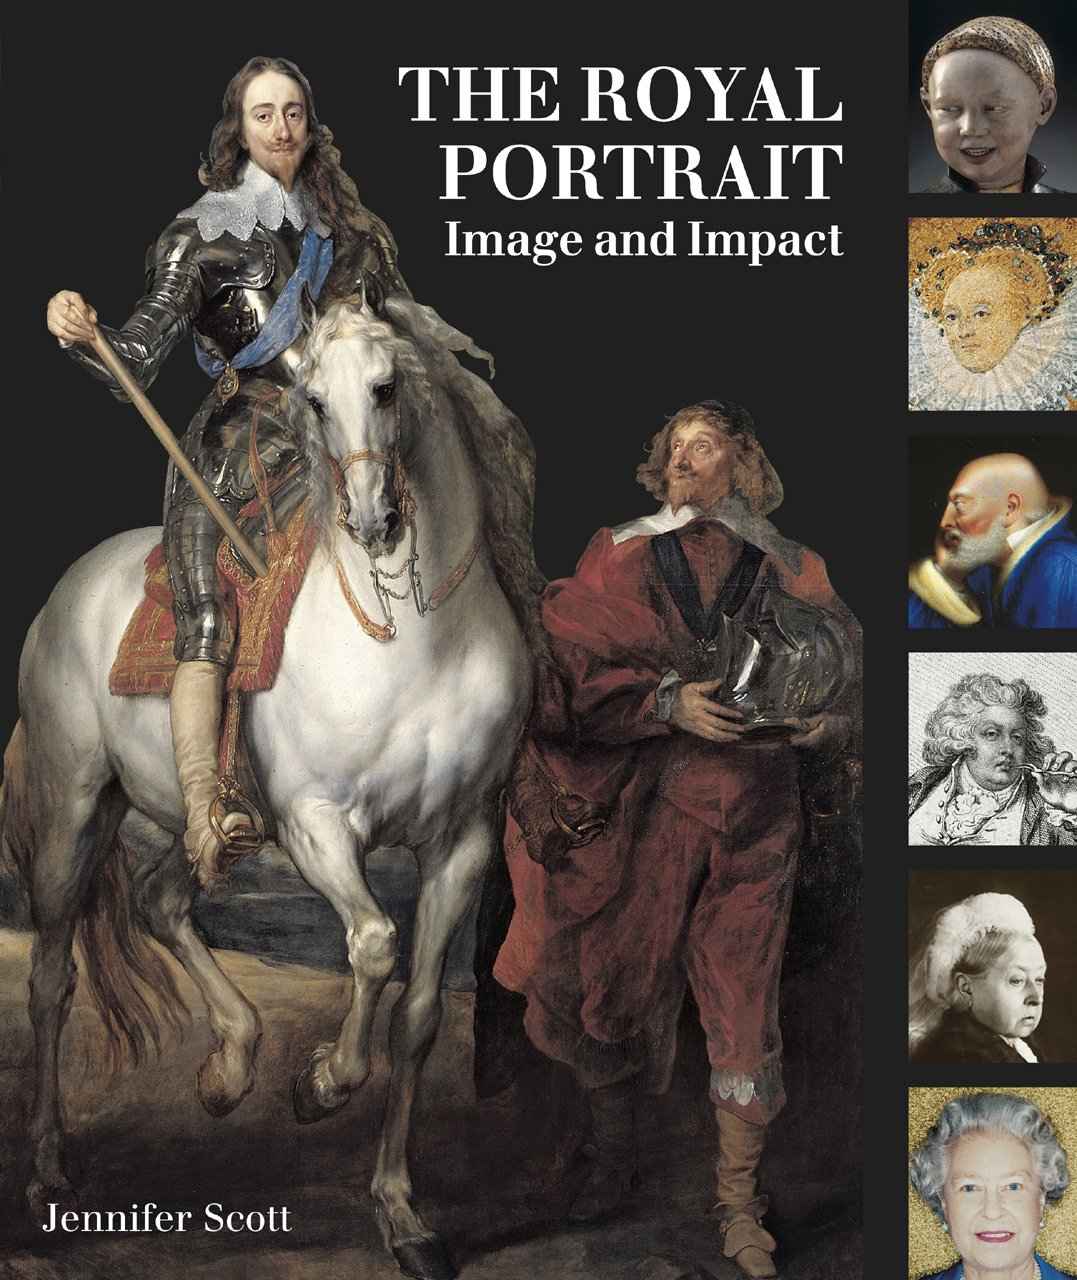 The Royal Portrait: Image and Impact